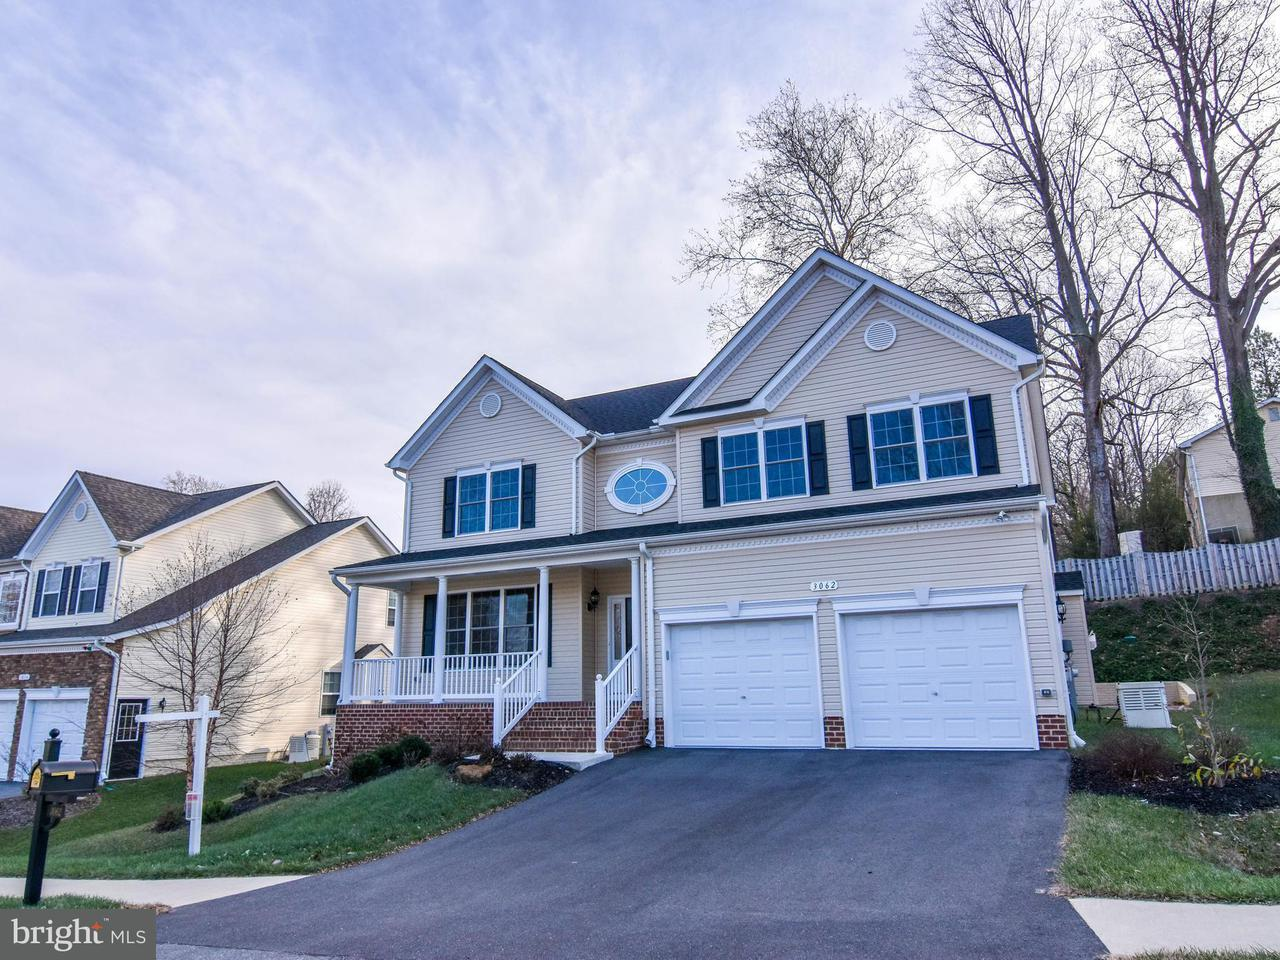 Single Family Home for Sale at 3062 LAWRIN Court 3062 LAWRIN Court Chesapeake Beach, Maryland 20732 United States